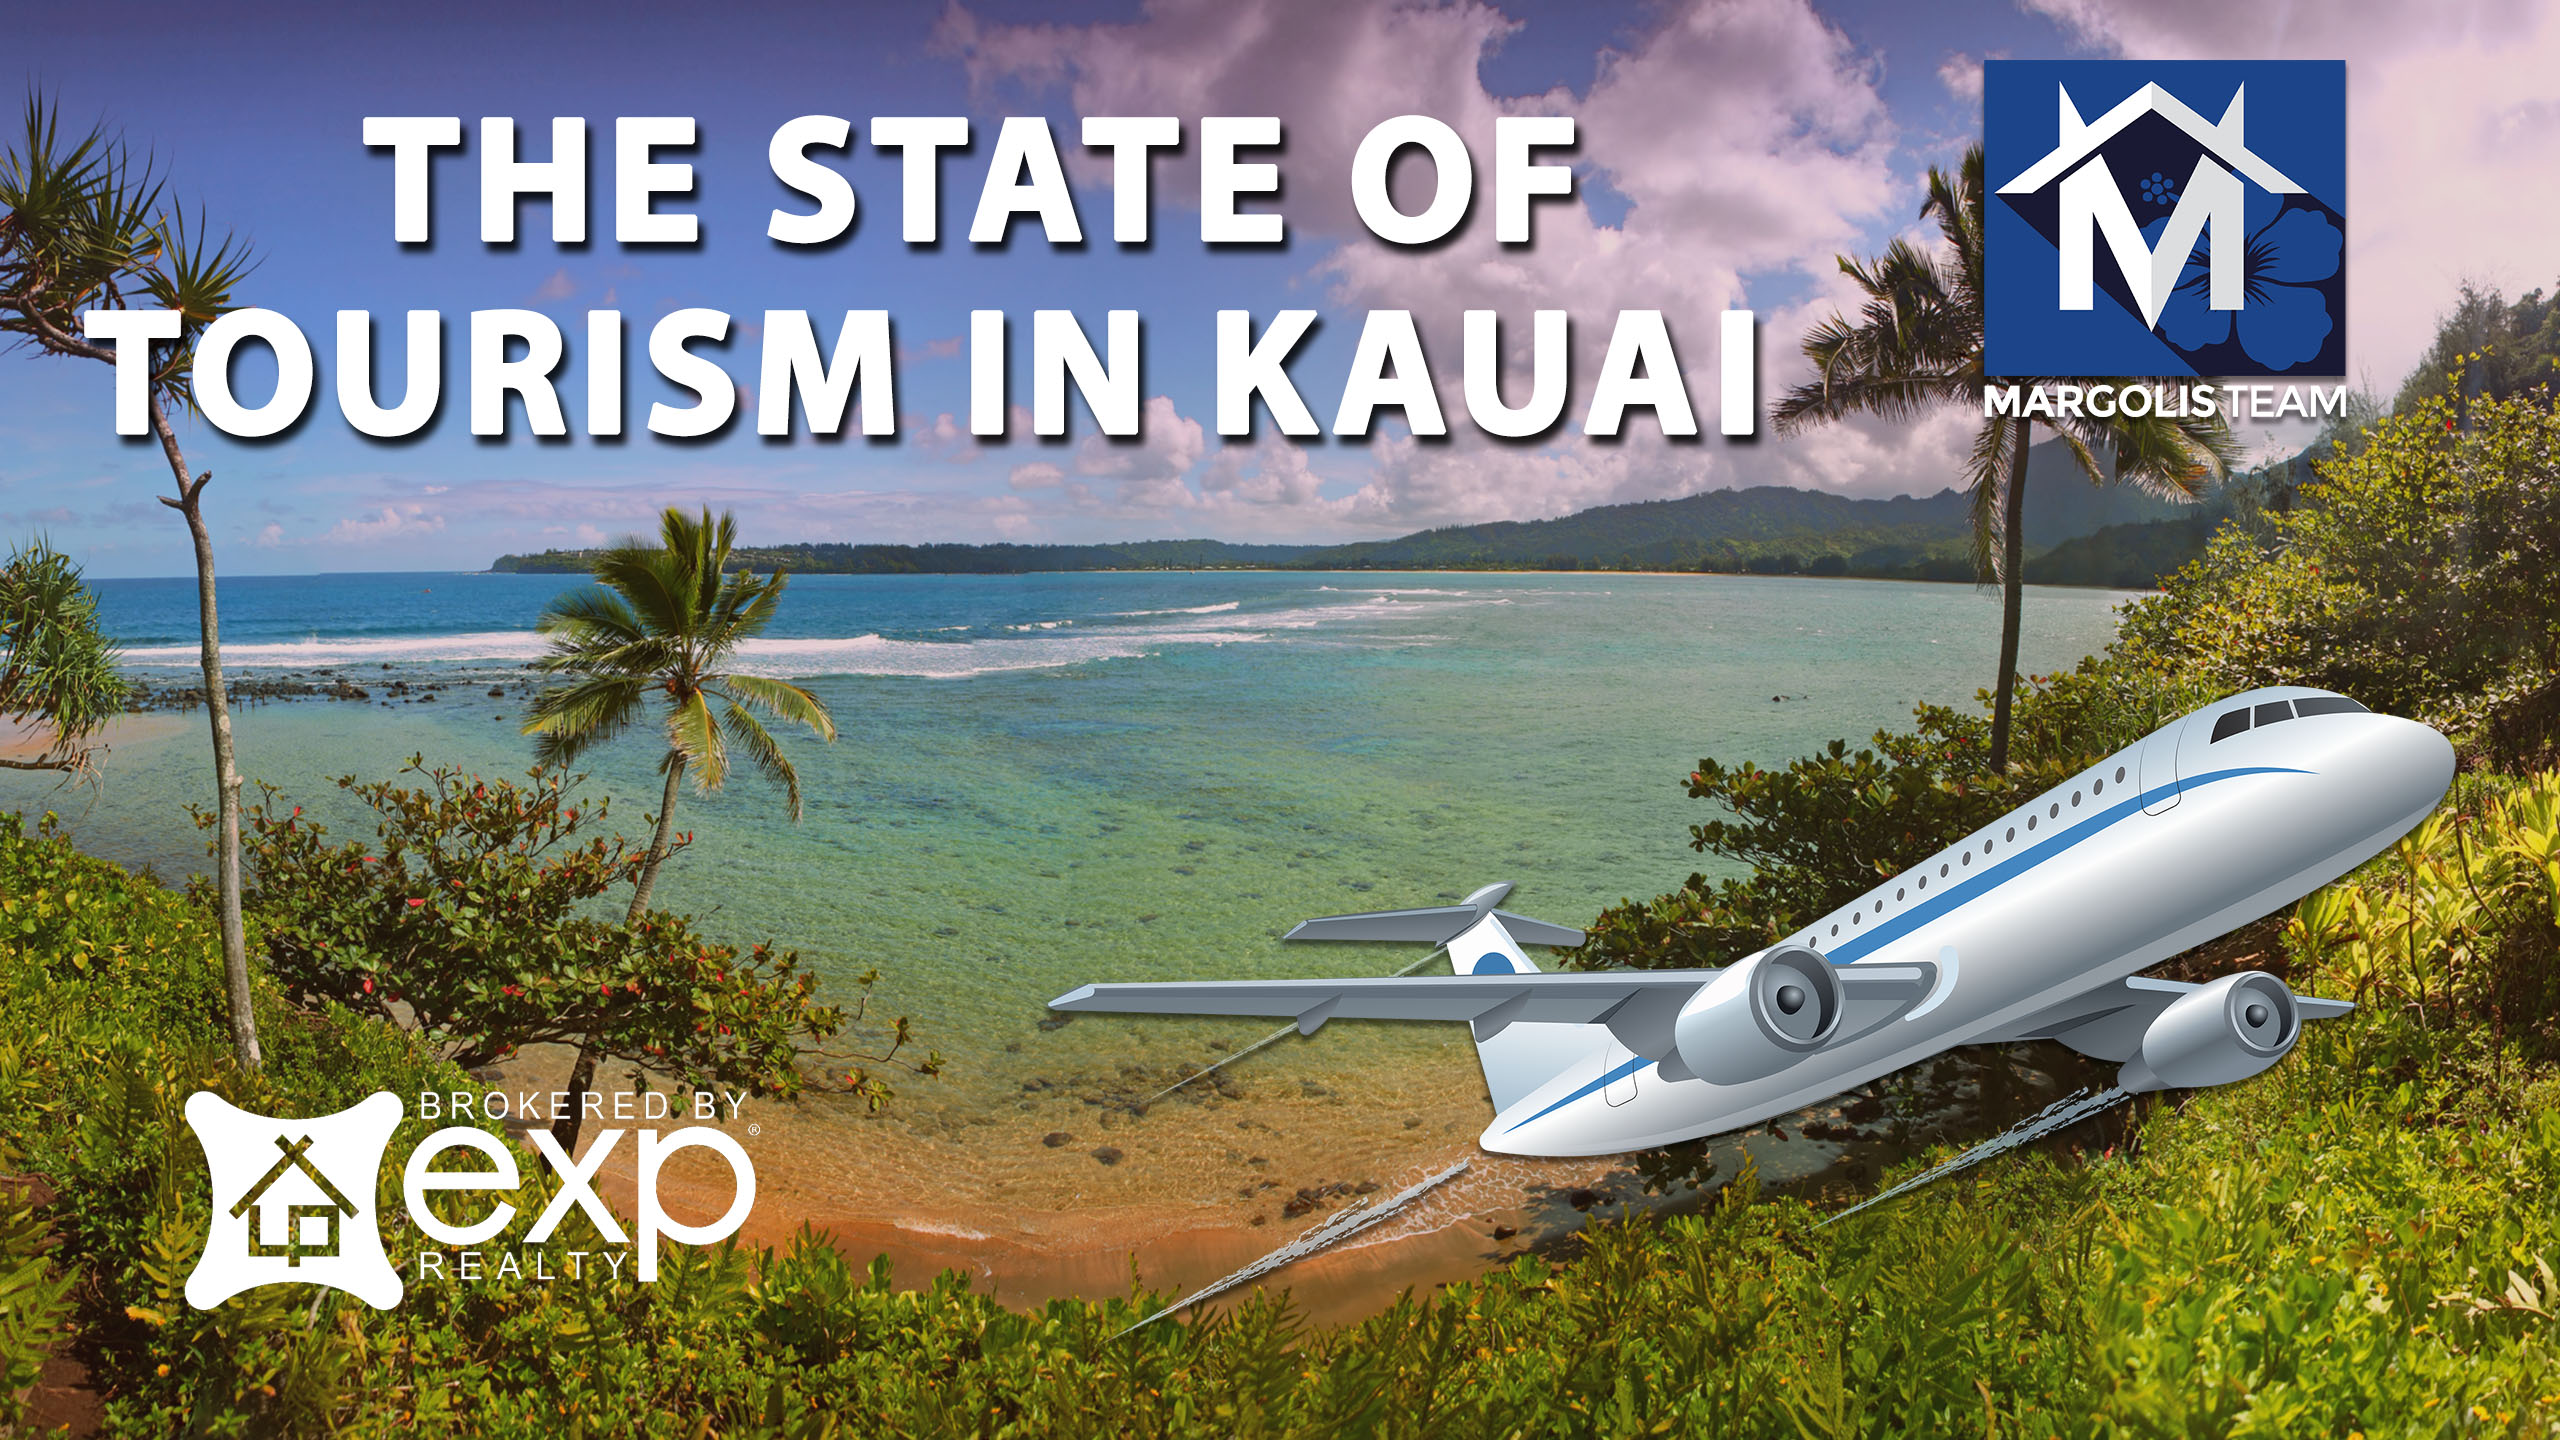 What Key Issues Affect Tourism in Kauai?